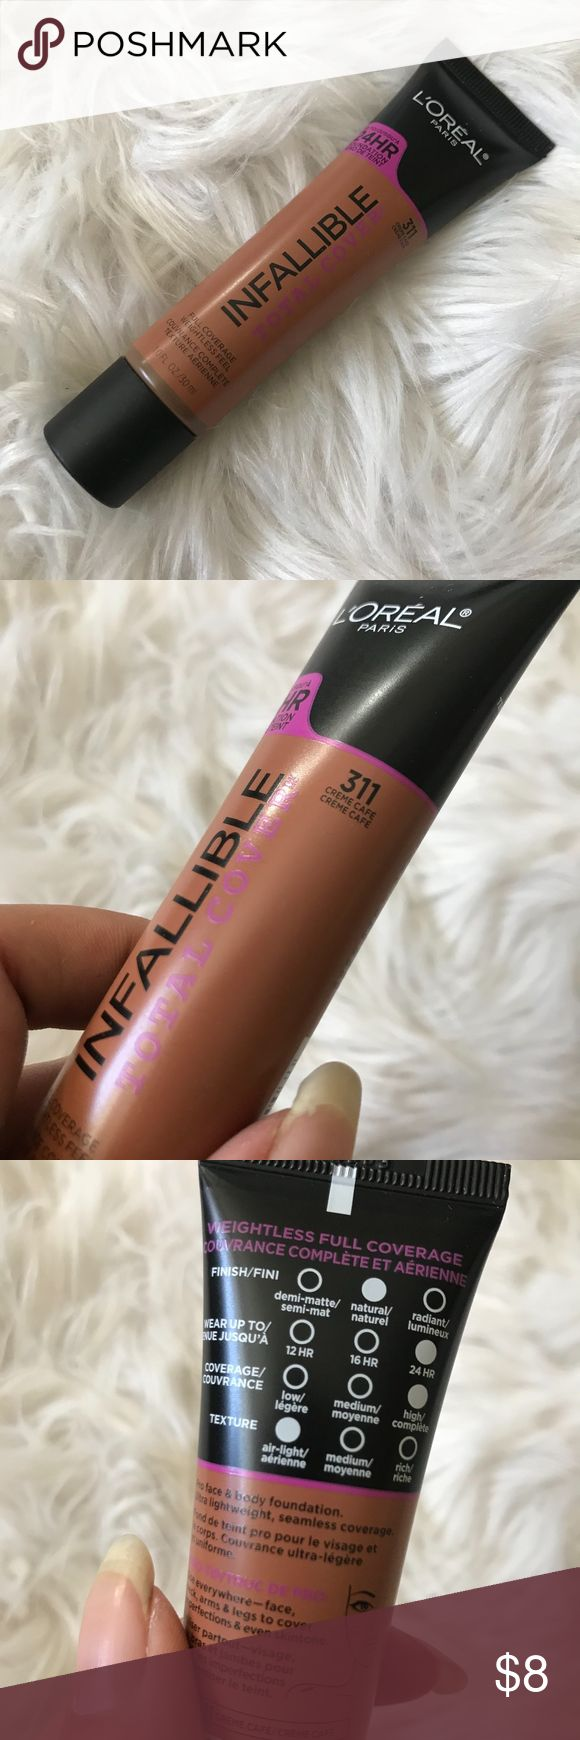 NEW L'ORÉAL Infallible Total Cover Foundation Brand new L'ORÉAL Infallible Total Cover Foundation in shade 311 Creme Cafe. Seal still on! L'Oreal Makeup Foundation